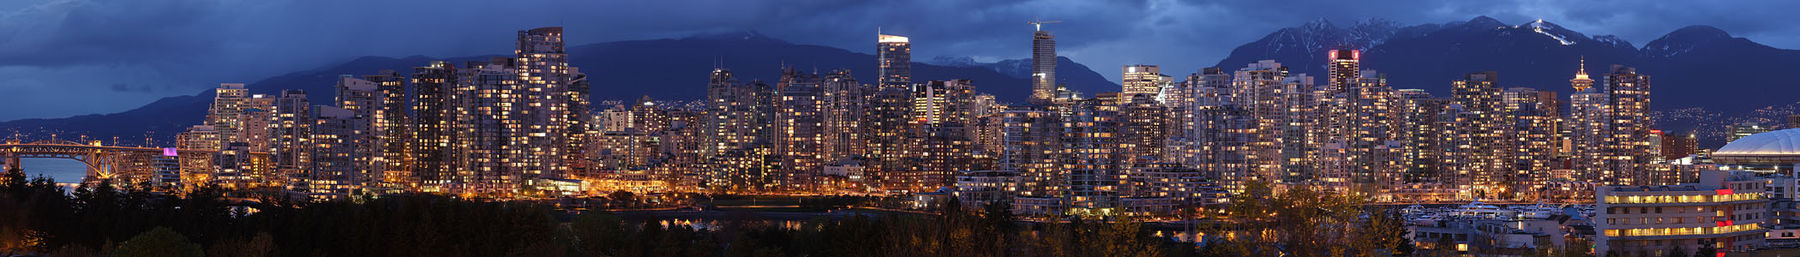 Vancouver banner Downtown at dusk.jpg